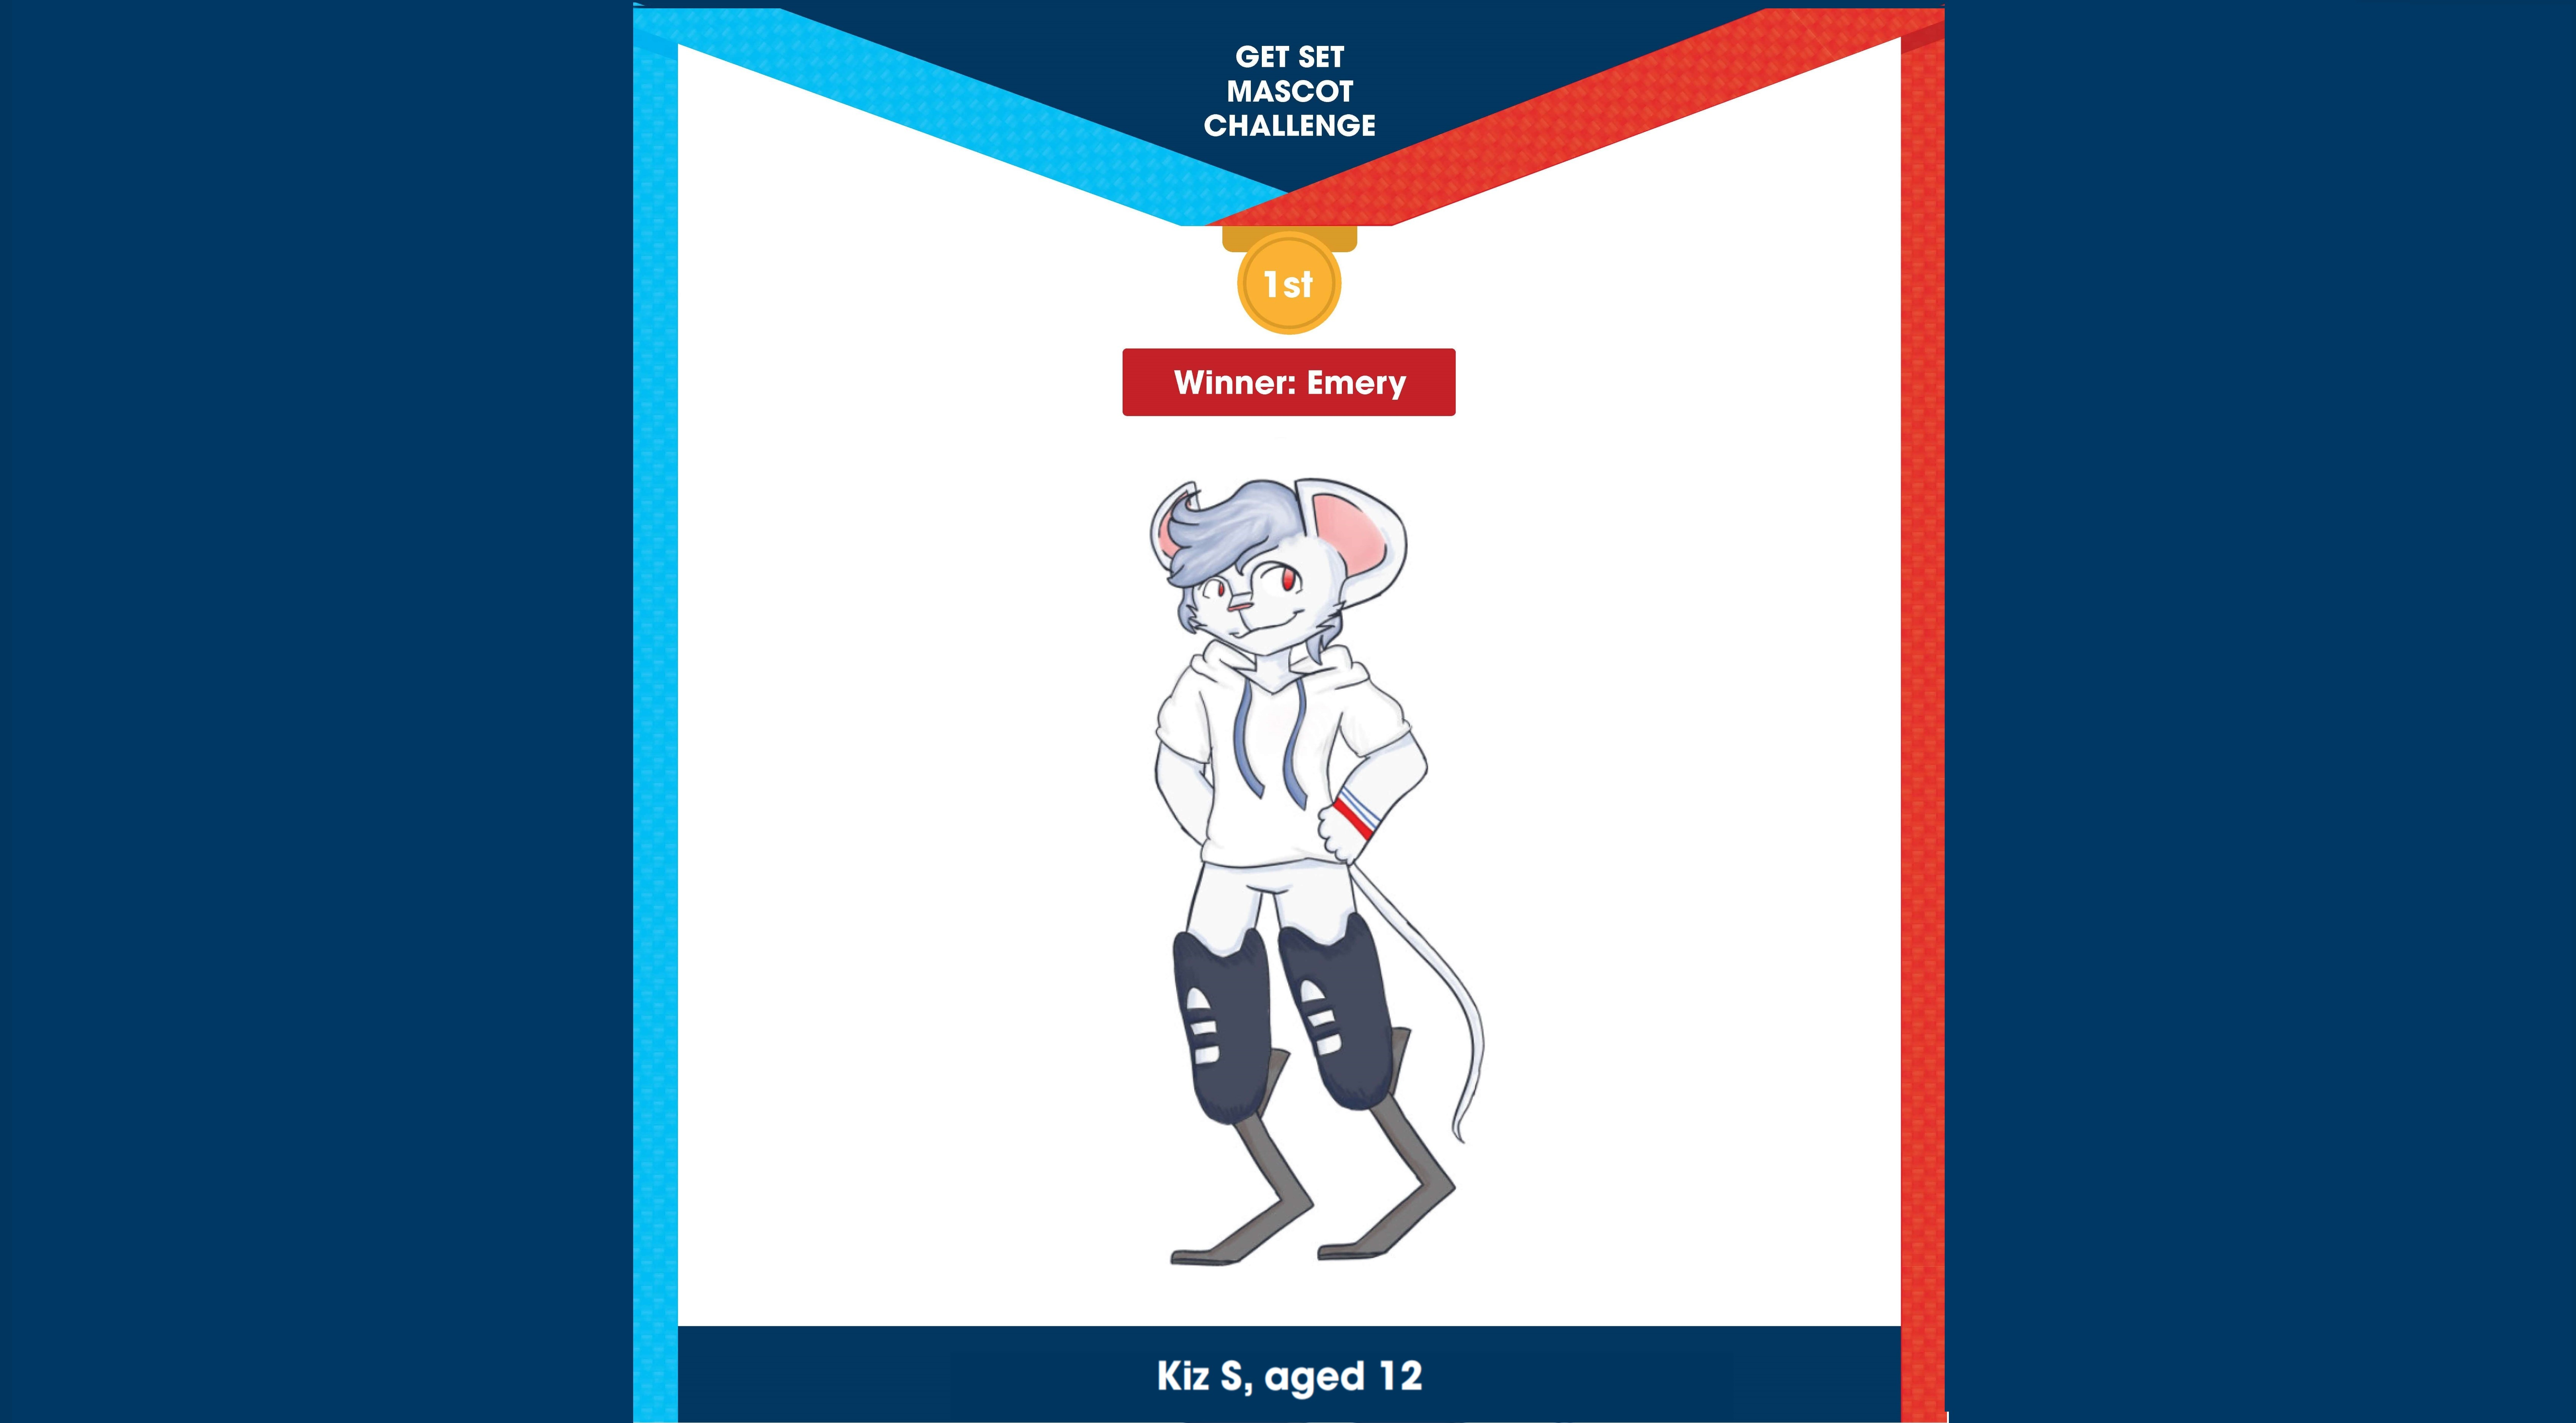 Image of the overall winning design in Get Set's Mascot Challenge. It shows a white mouse with running blades called Emery, designed by Kiz S, aged 12.